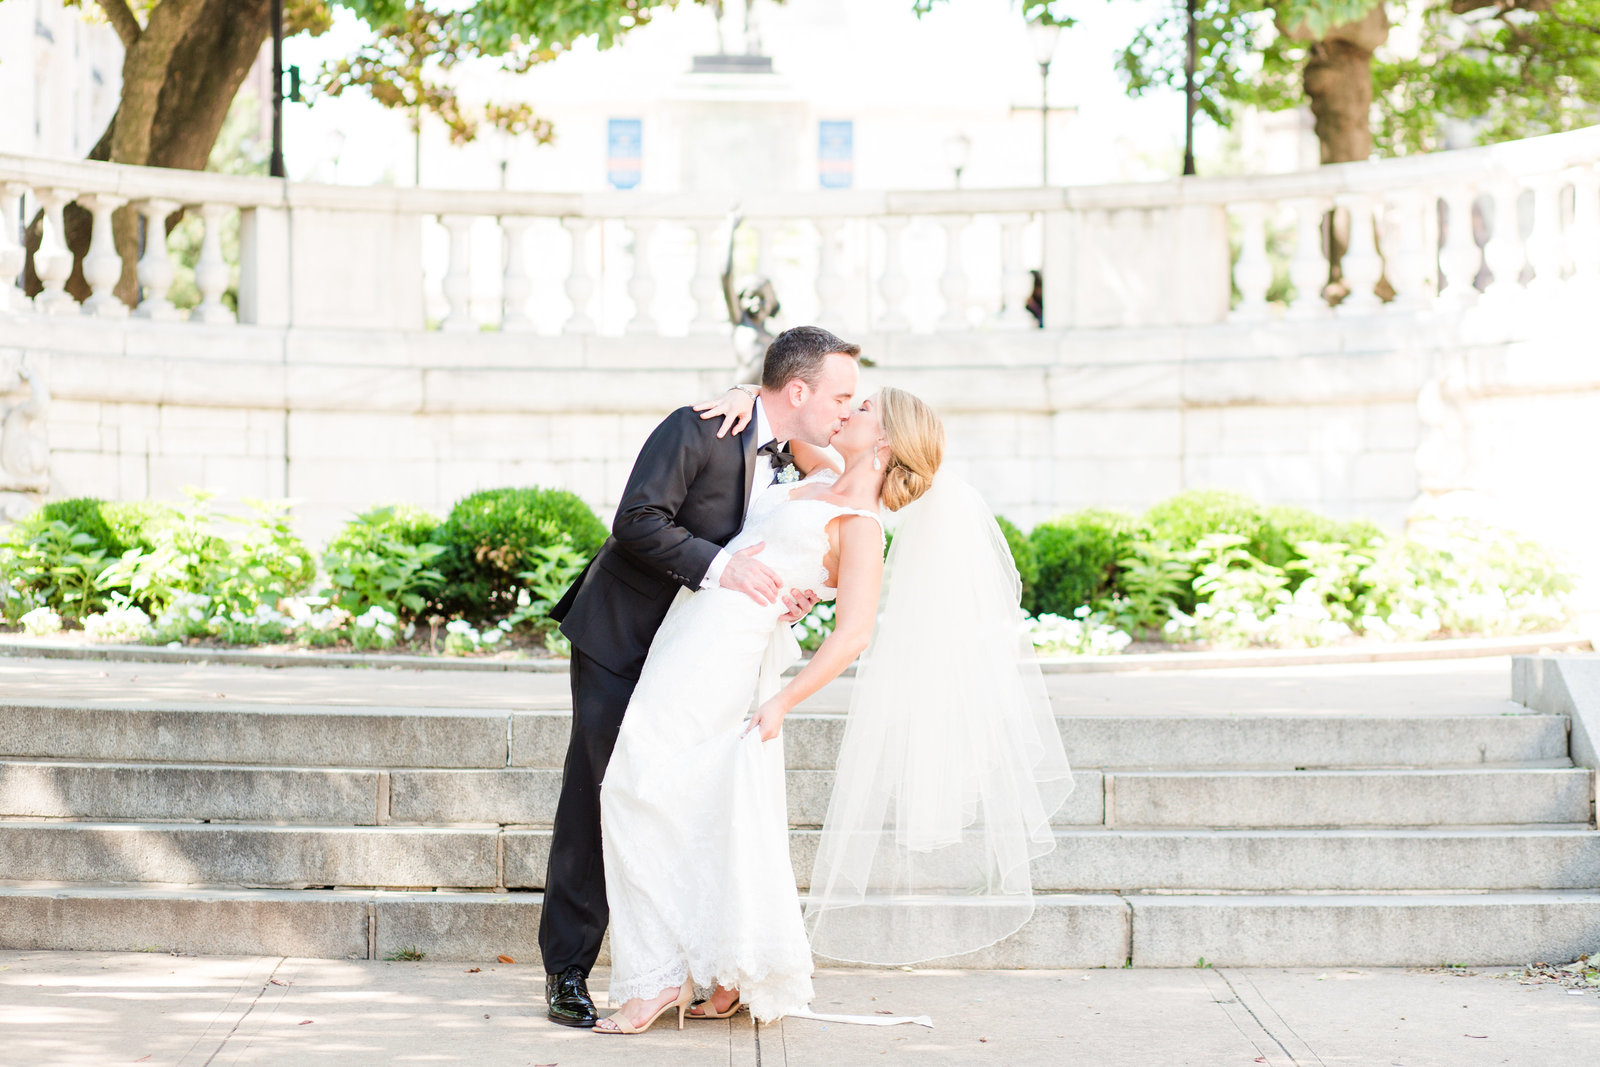 baltimore-maryland-wedding-mt-vernon-navin-bethanne-arthur-photography-bride-groom-photos-75